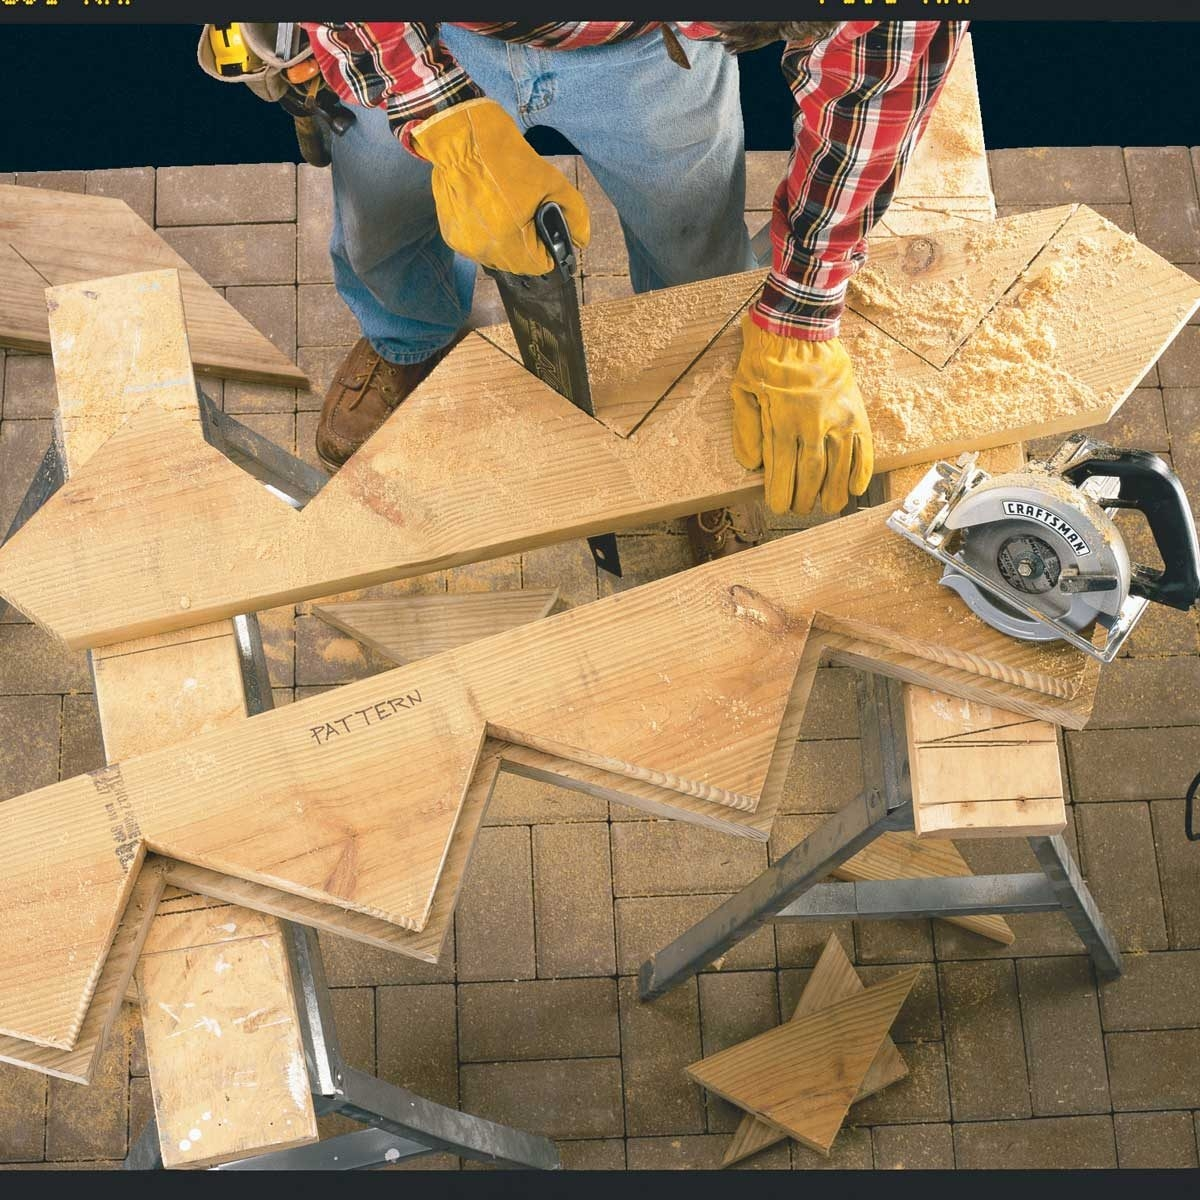 How To Build Deck Stairs The Family Handyman | Building Deck Steps With Stringers | Landing | Stair Treads | Deck Railings | Outdoor | Pressure Treated